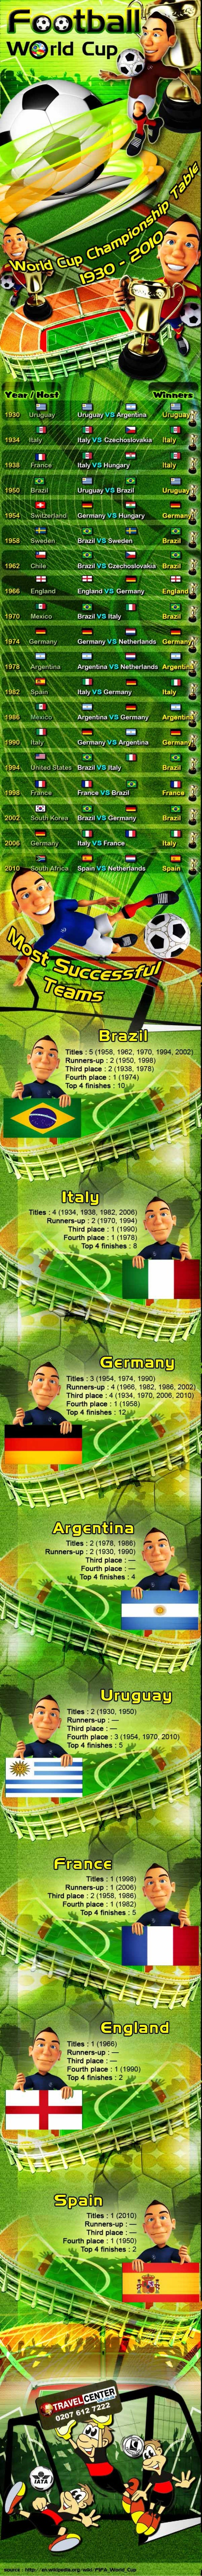 Football world cup championship table 1930 - 2010